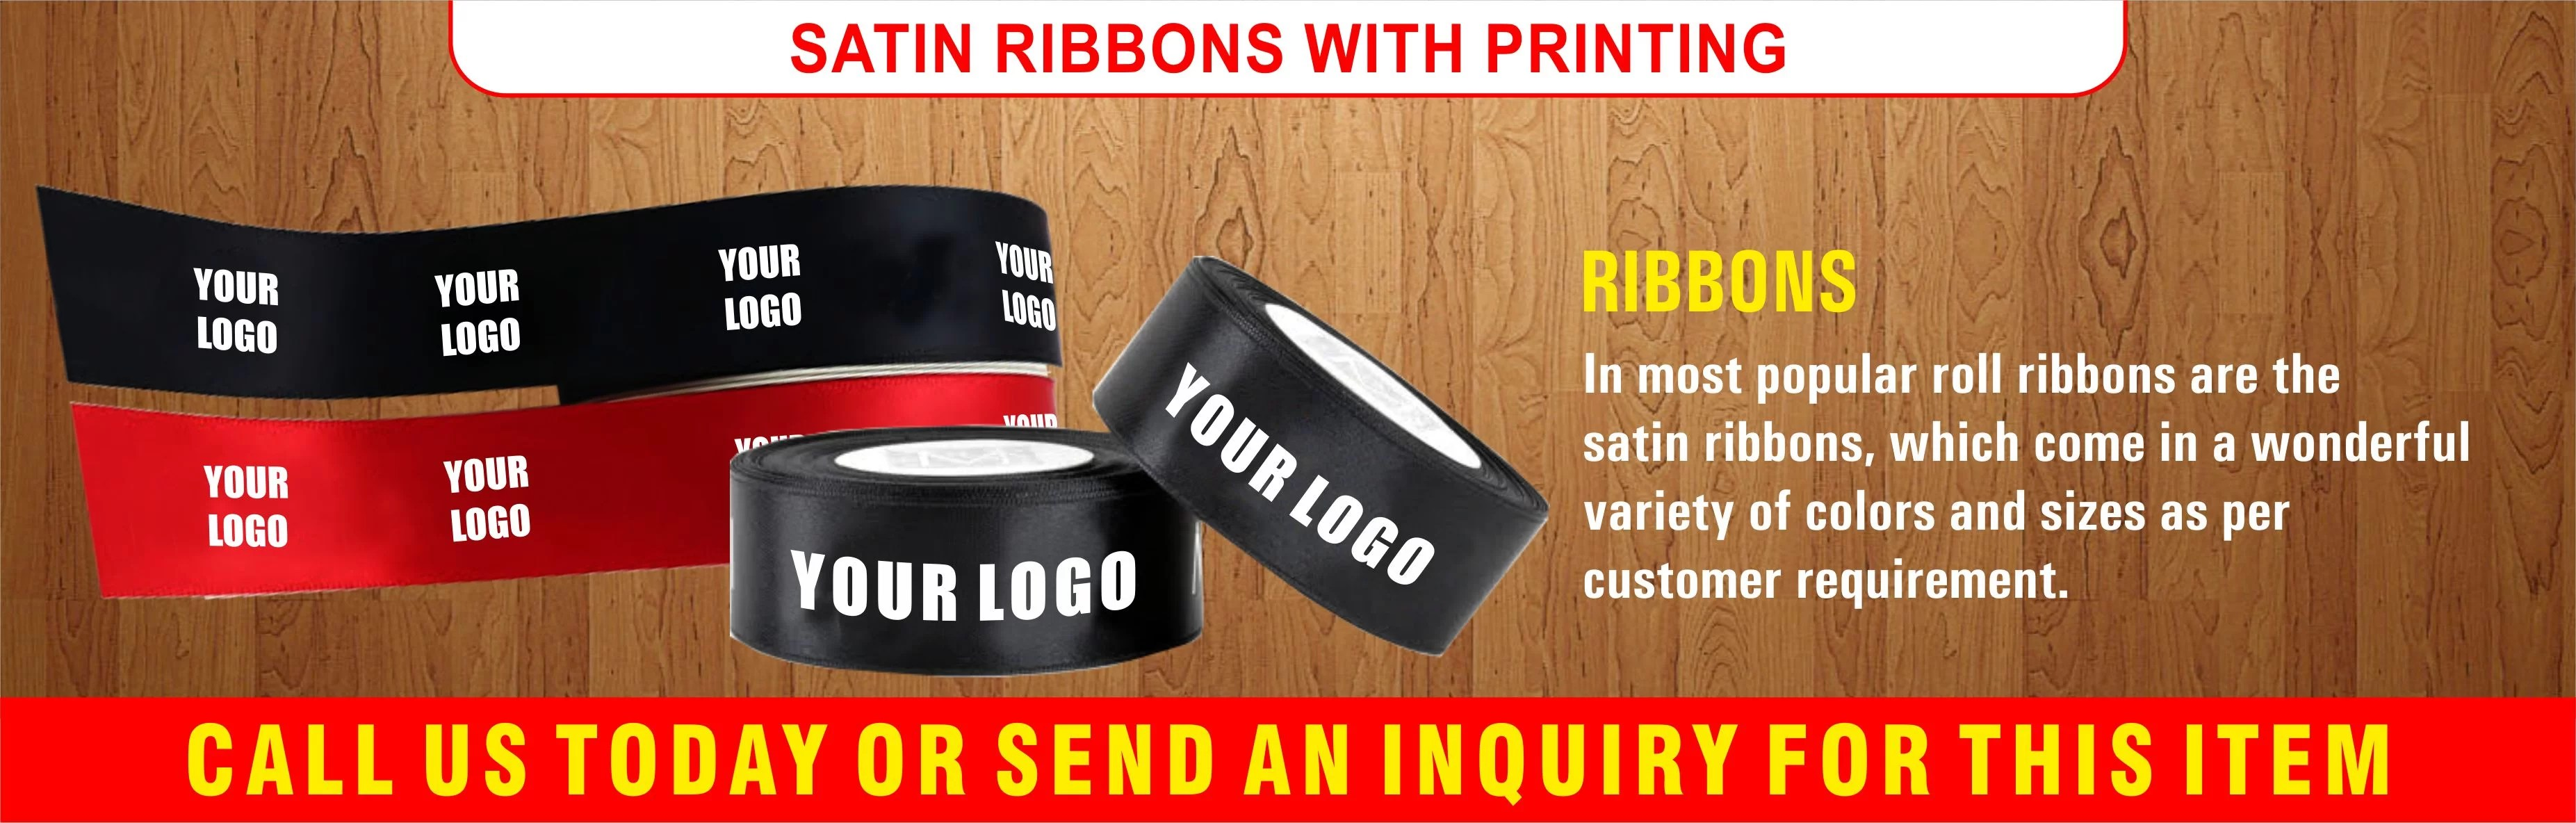 Customised Ribbon Printing-ribbon supplier in dubai-Ribbon printing in dubai